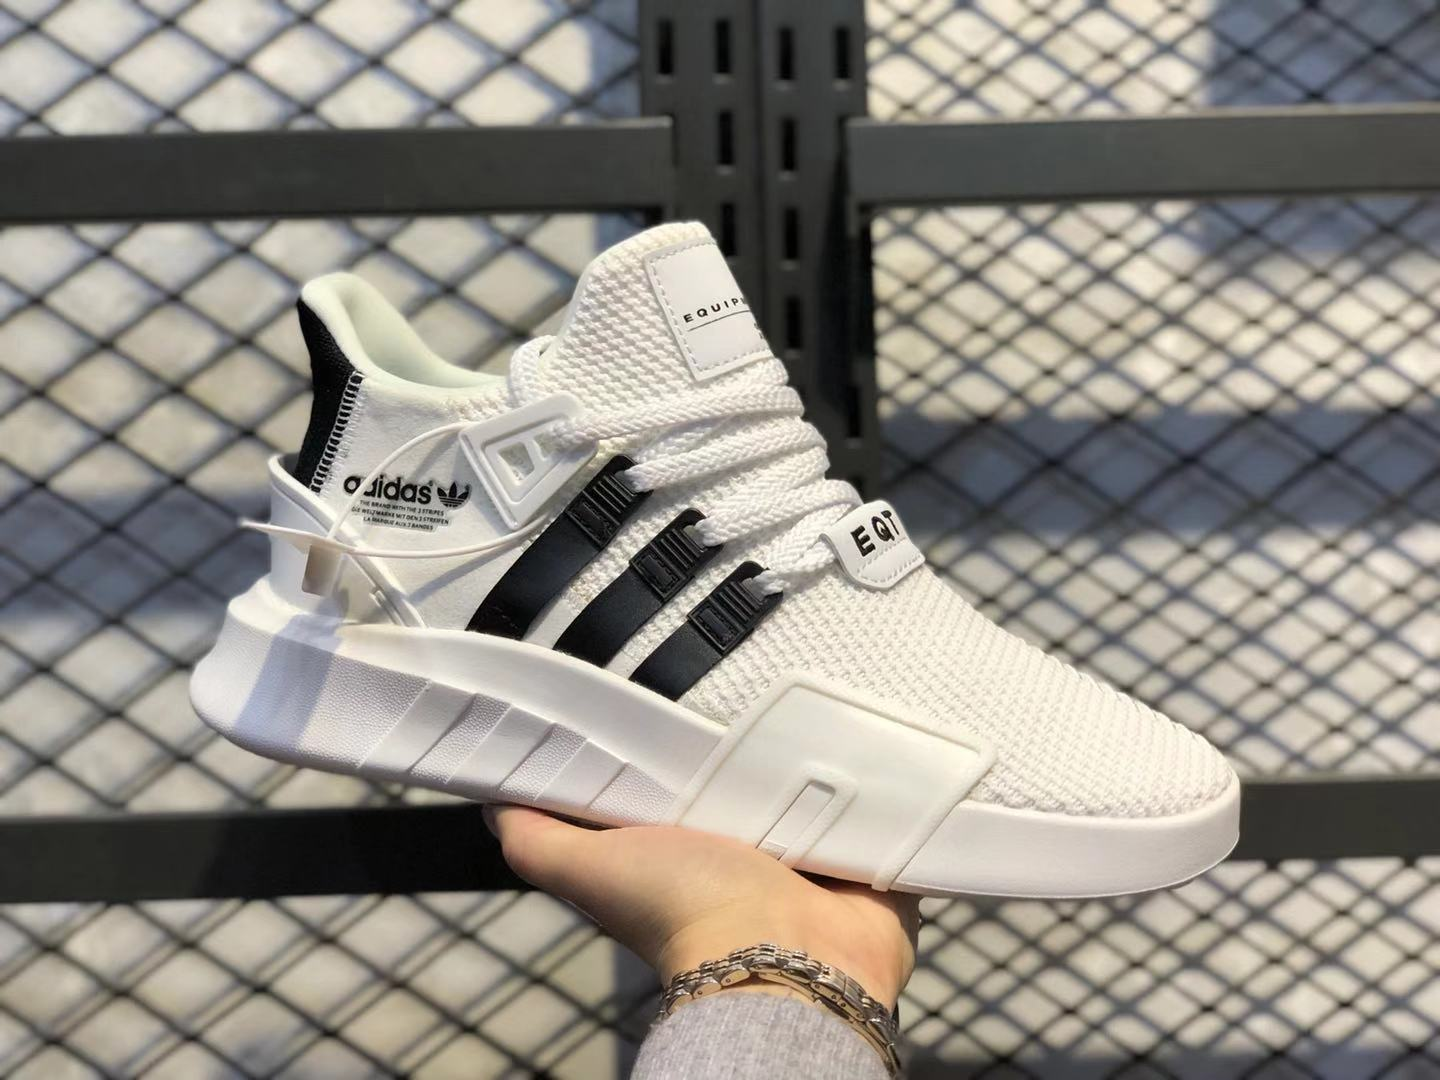 Adidas EQT Bask ADV White/Black Running Shoes On Sale FU9398